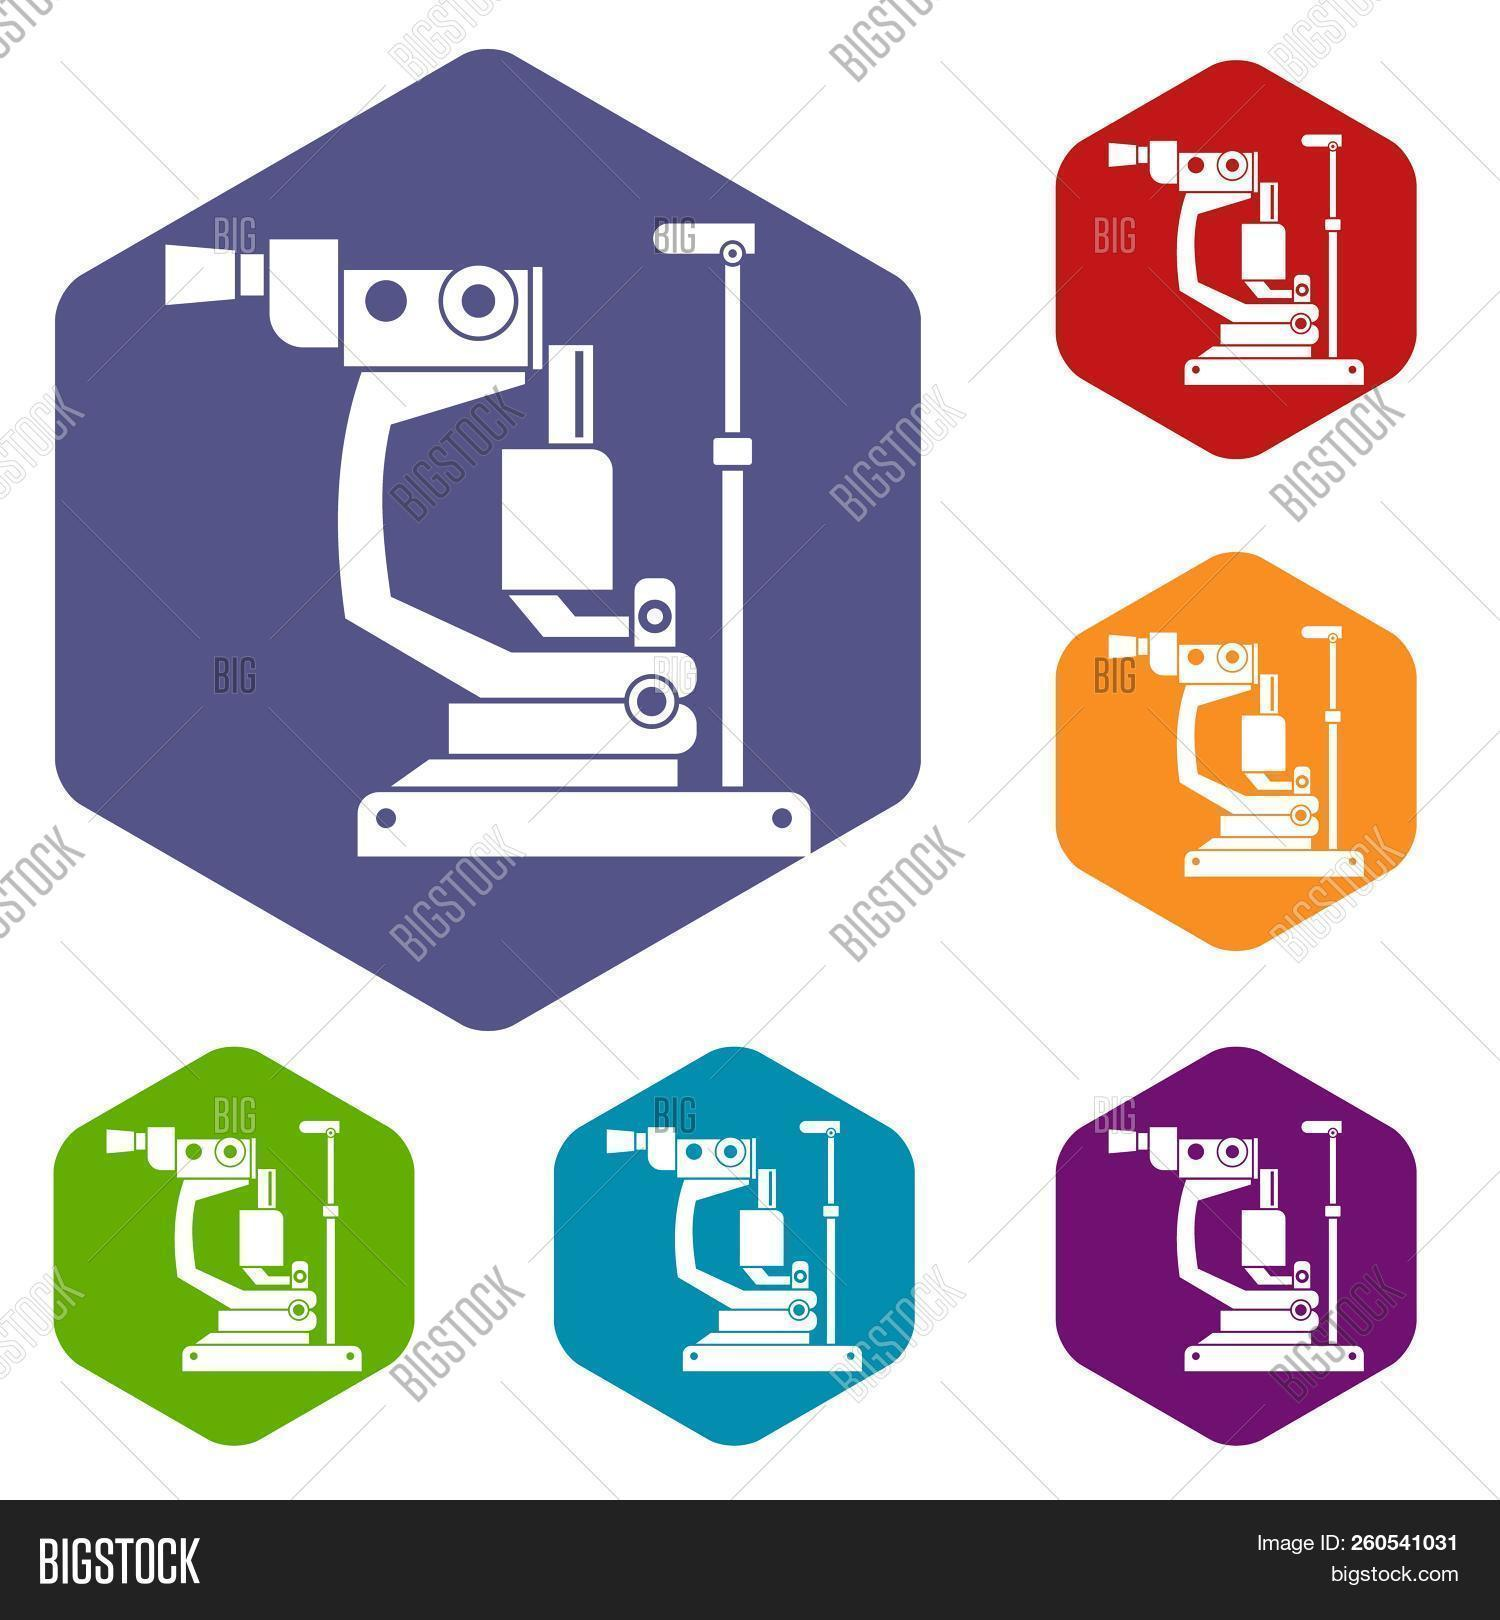 care,chart,clinic,collection,corrective,device,diagnosis,diopter,equipment,exam,examination,eye,eyeglasses,eyesight,focus,glasses,health,healthcare,icon,instrument,lens,machine,measure,measurement,medical,medicine,object,ophthalmologist,ophthalmology,optic,optical,optician,optometrist,optometry,patient,phoropter,rhombus,science,set,sight,sign,surgery,technology,test,treatment,up,vision,visual